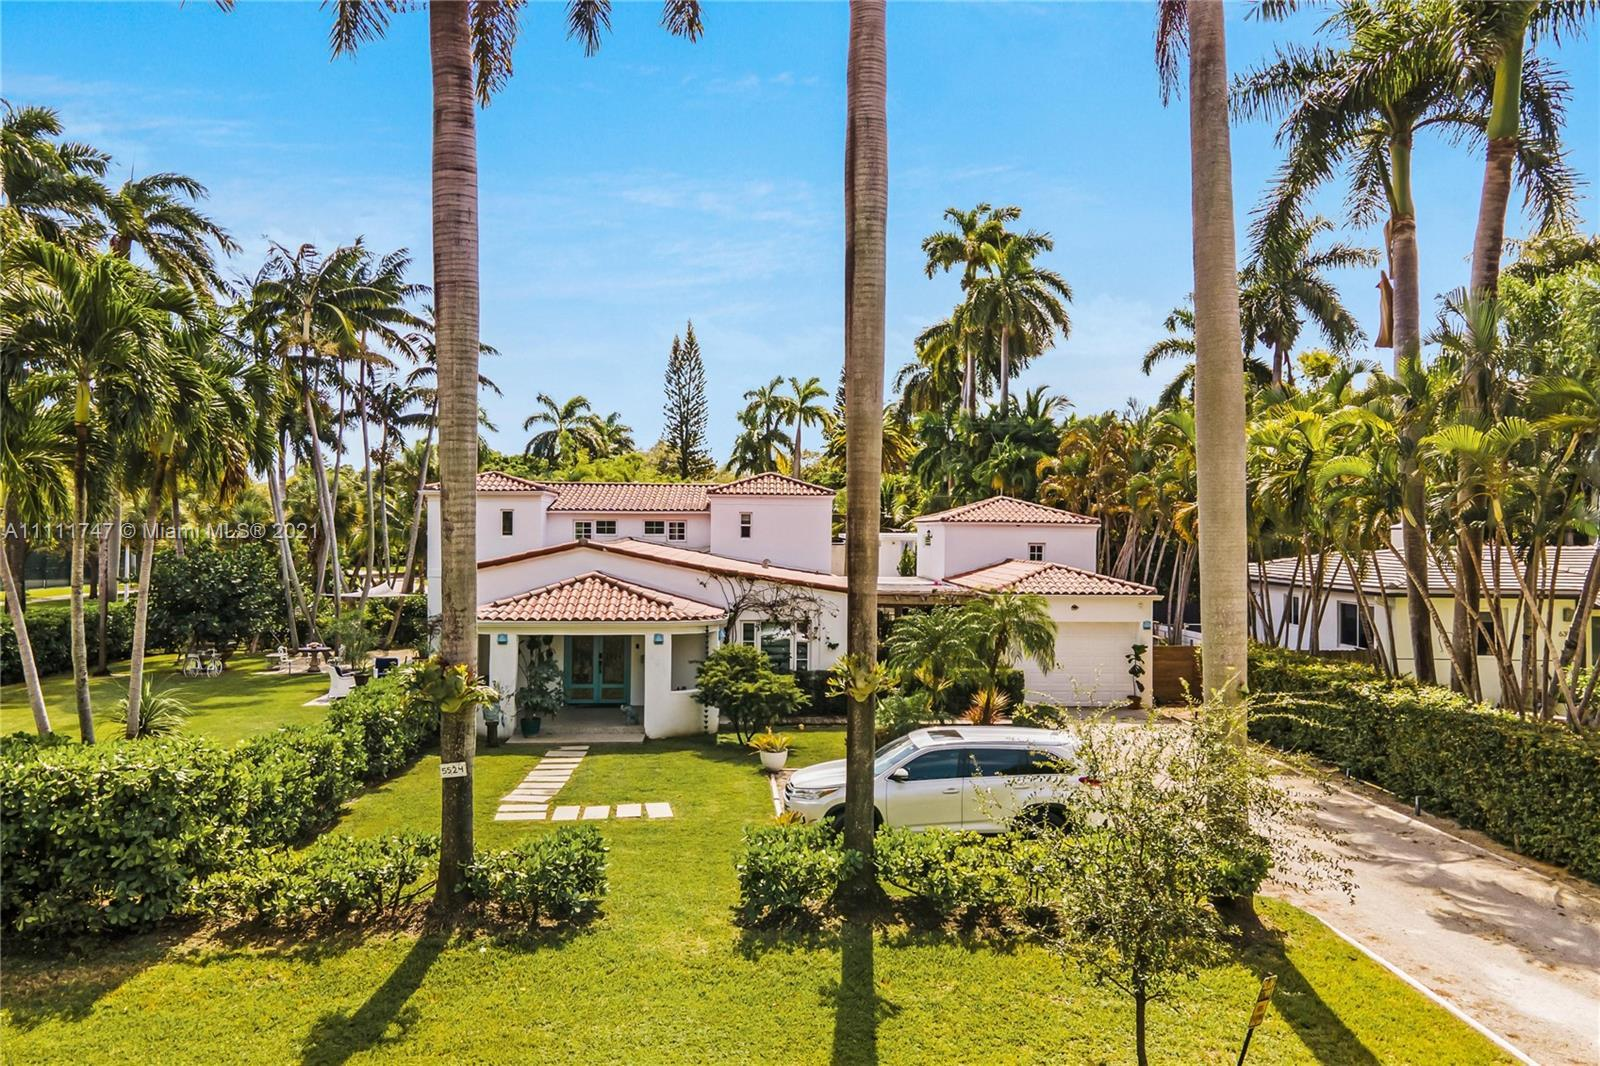 Unique property located in the exclusive and historic site of Morningside, FL.  This 5 bedroom and 4